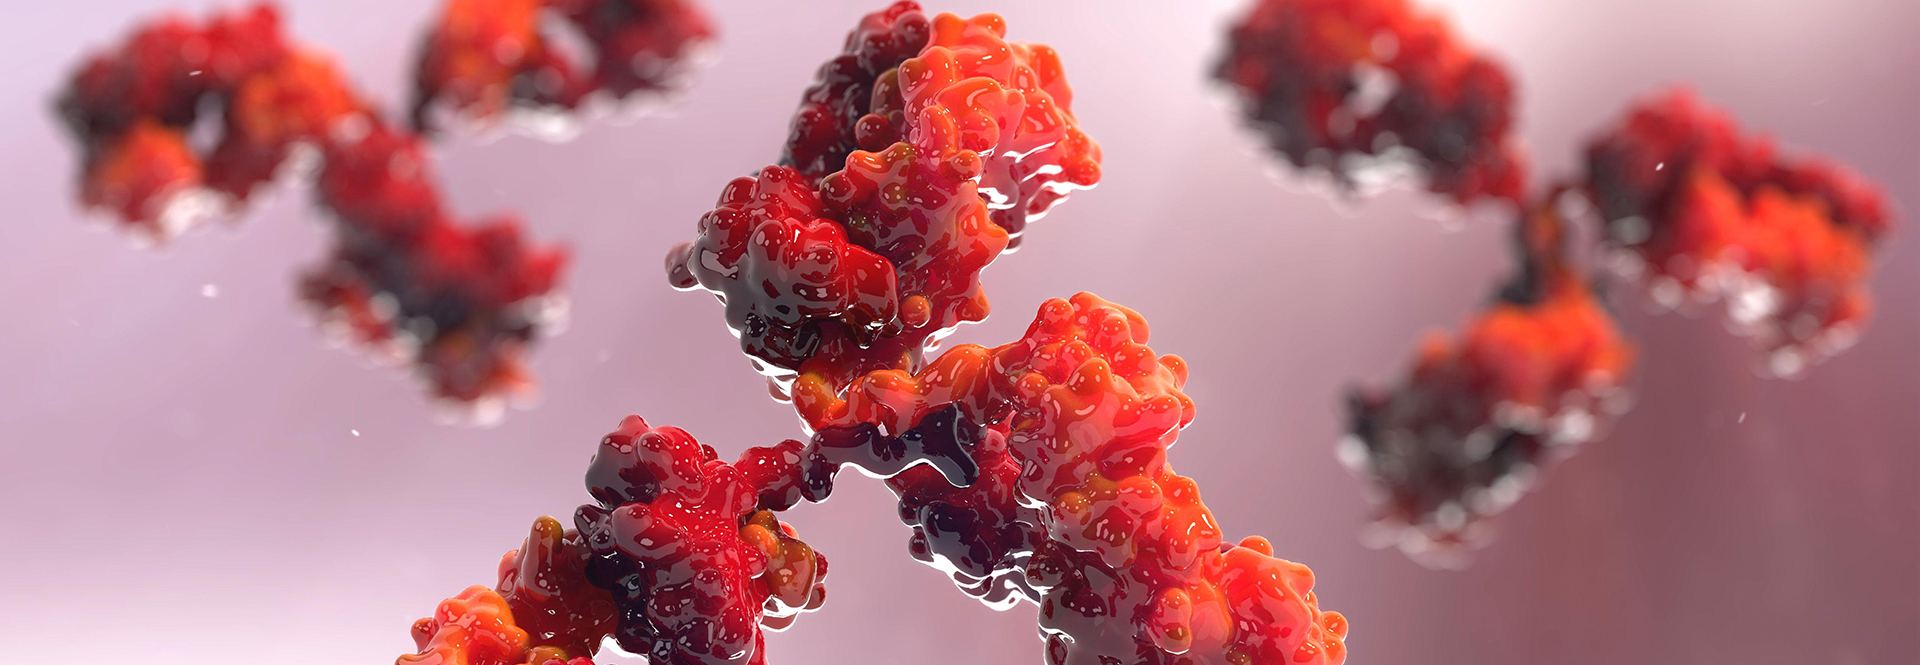 Antibodies-Reagents-Header.jpg